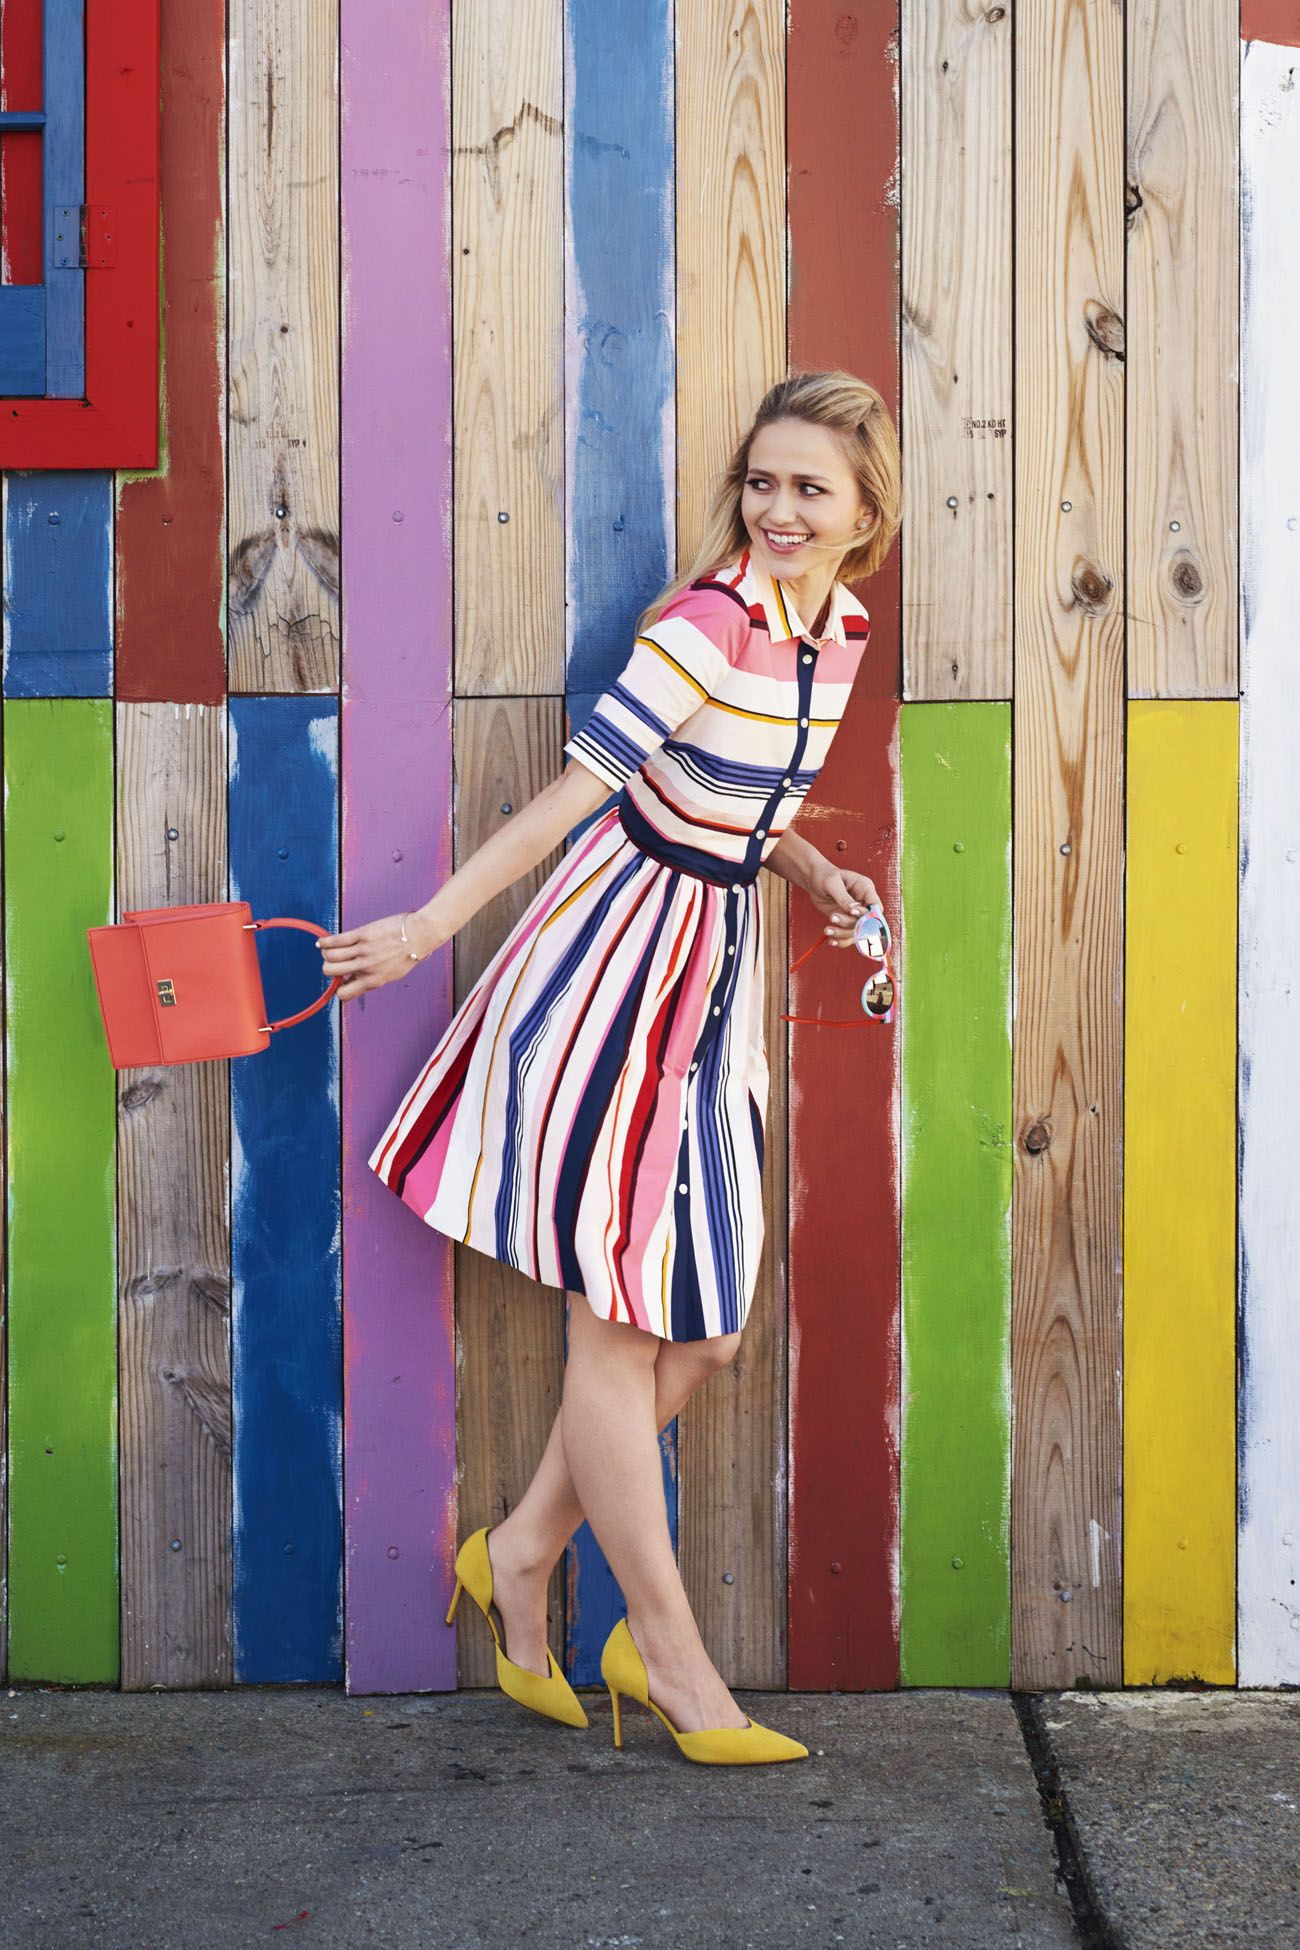 """<p>Prettier than pinstripes and a bit sassier, it's the preppy way to ring in spring.</p><p><em data-redactor-tag=""""em"""" data-verified=""""redactor""""><strong data-redactor-tag=""""strong"""" data-verified=""""redactor"""">Dress,</strong> $398, <a href=""""http://katespade.com"""" target=""""_blank"""" data-tracking-id=""""recirc-text-link"""">katespade.com</a>. <strong data-redactor-tag=""""strong"""" data-verified=""""redactor"""">Earrings,</strong> $22, <a href=""""http://spartina449.com"""" target=""""_blank"""" data-tracking-id=""""recirc-text-link"""">spartina449.com</a>. <strong data-redactor-tag=""""strong"""" data-verified=""""redactor"""">Sunglasses,</strong> $95, <a href=""""http://shop.swatch.com"""" target=""""_blank"""" data-tracking-id=""""recirc-text-link"""">shop.swatch.com</a>. <strong data-redactor-tag=""""strong"""" data-verified=""""redactor"""">Bracelet,</strong> $36, <a href=""""http://admkjewelry.com"""" target=""""_blank"""" data-tracking-id=""""recirc-text-link"""">admkjewelry.com</a>. <strong data-redactor-tag=""""strong"""" data-verified=""""redactor"""">Purse,</strong> $148, <a href=""""http://neelyandchloe.com"""" target=""""_blank"""" data-tracking-id=""""recirc-text-link"""">neelyandchloe.com</a>. <strong data-redactor-tag=""""strong"""" data-verified=""""redactor"""">Heels,</strong> $160, <a href=""""http://marcfisherfootwear.com"""" target=""""_blank"""" data-tracking-id=""""recirc-text-link"""">marcfisherfootwear.com</a>.</em></p><p><strong data-redactor-tag=""""strong"""" data-verified=""""redactor"""">TRAVEL TIP:</strong> Take in authentic Spanish cuisine and colorfuldecor at Long Island City local favorite <a href=""""http://www.lachozadelgordo.com/"""" target=""""_blank"""" data-tracking-id=""""recirc-text-link"""">La Choza del Gordo</a>.</p>"""